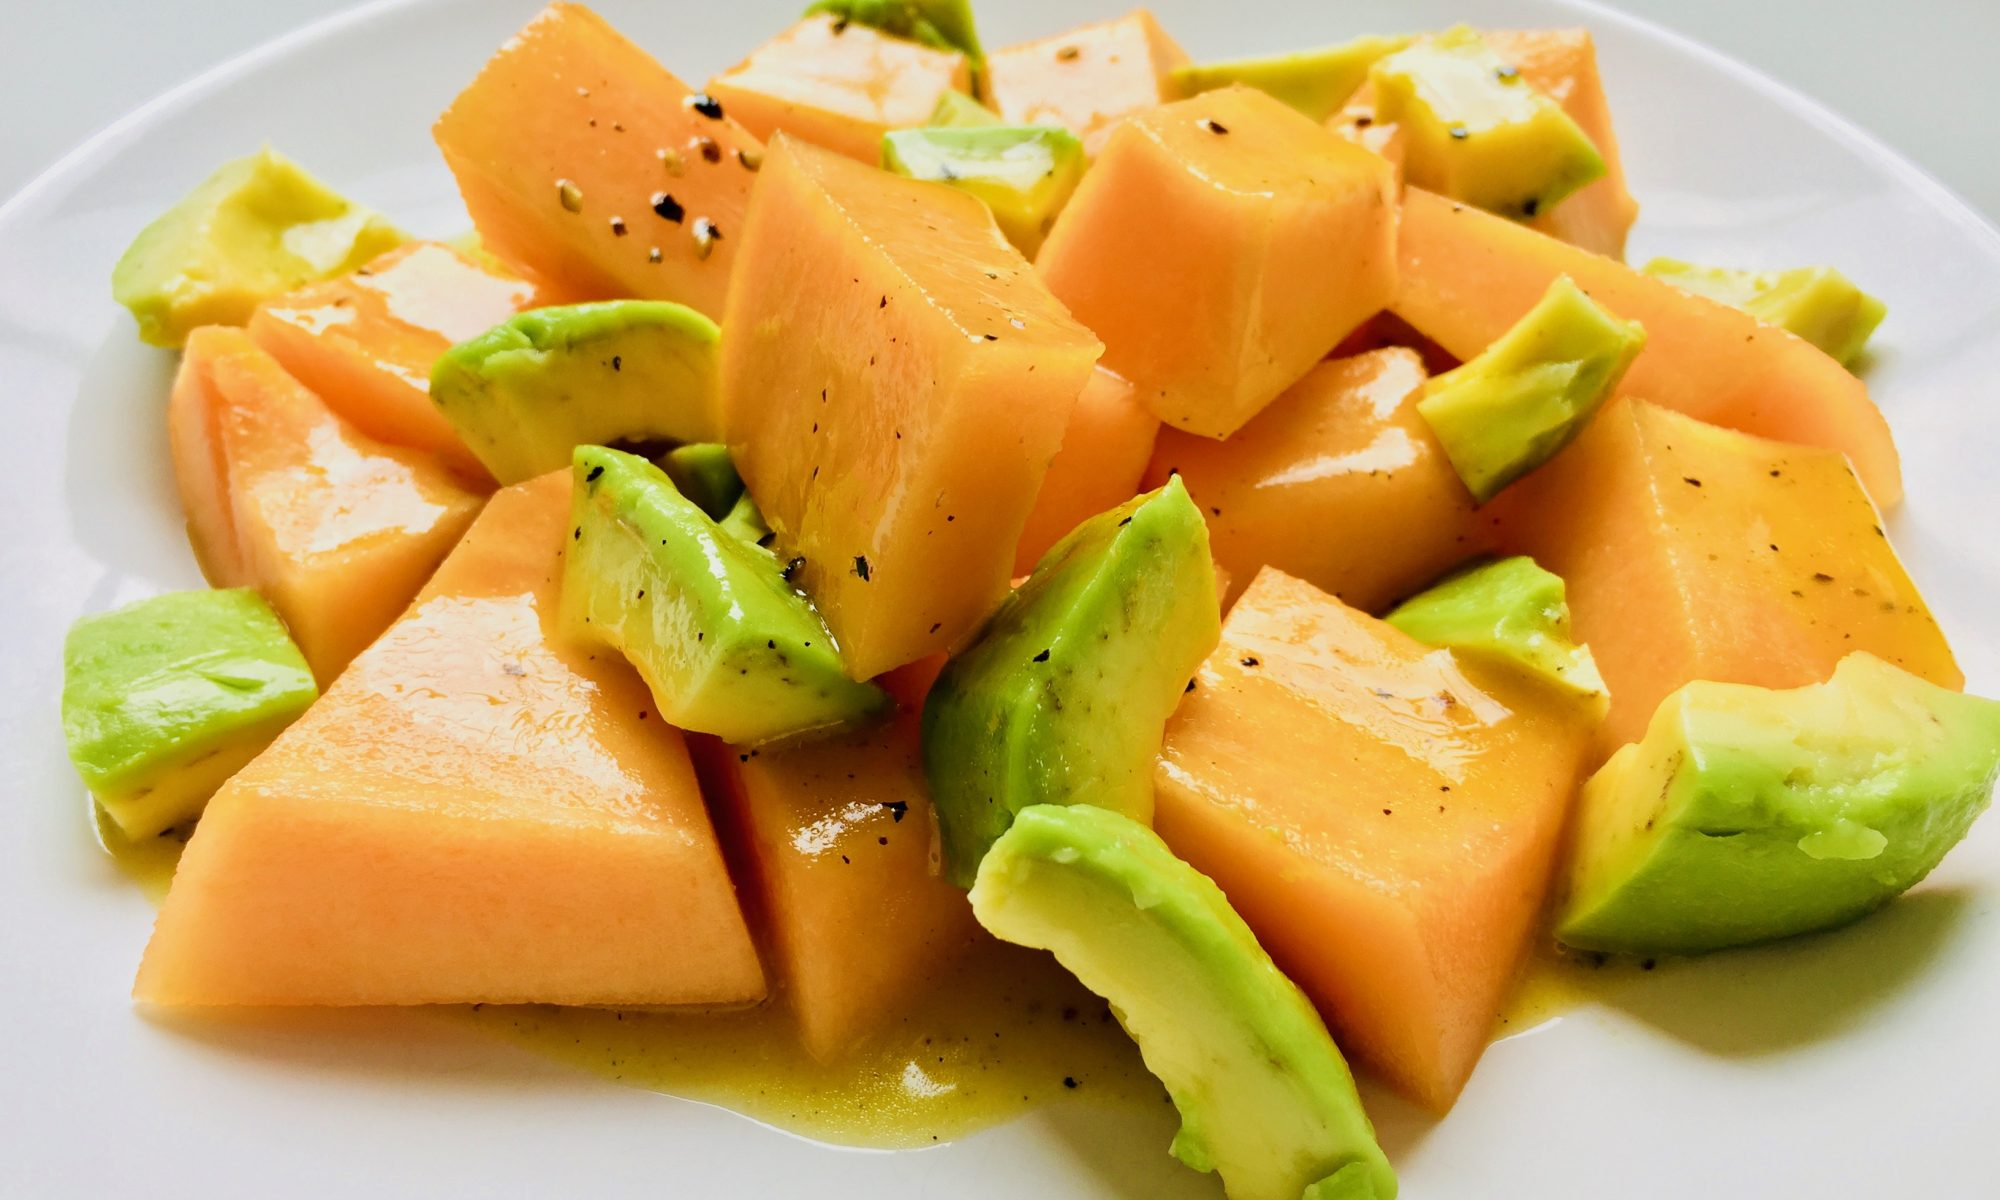 Kalifornischer Avocado-Melonen-Salat